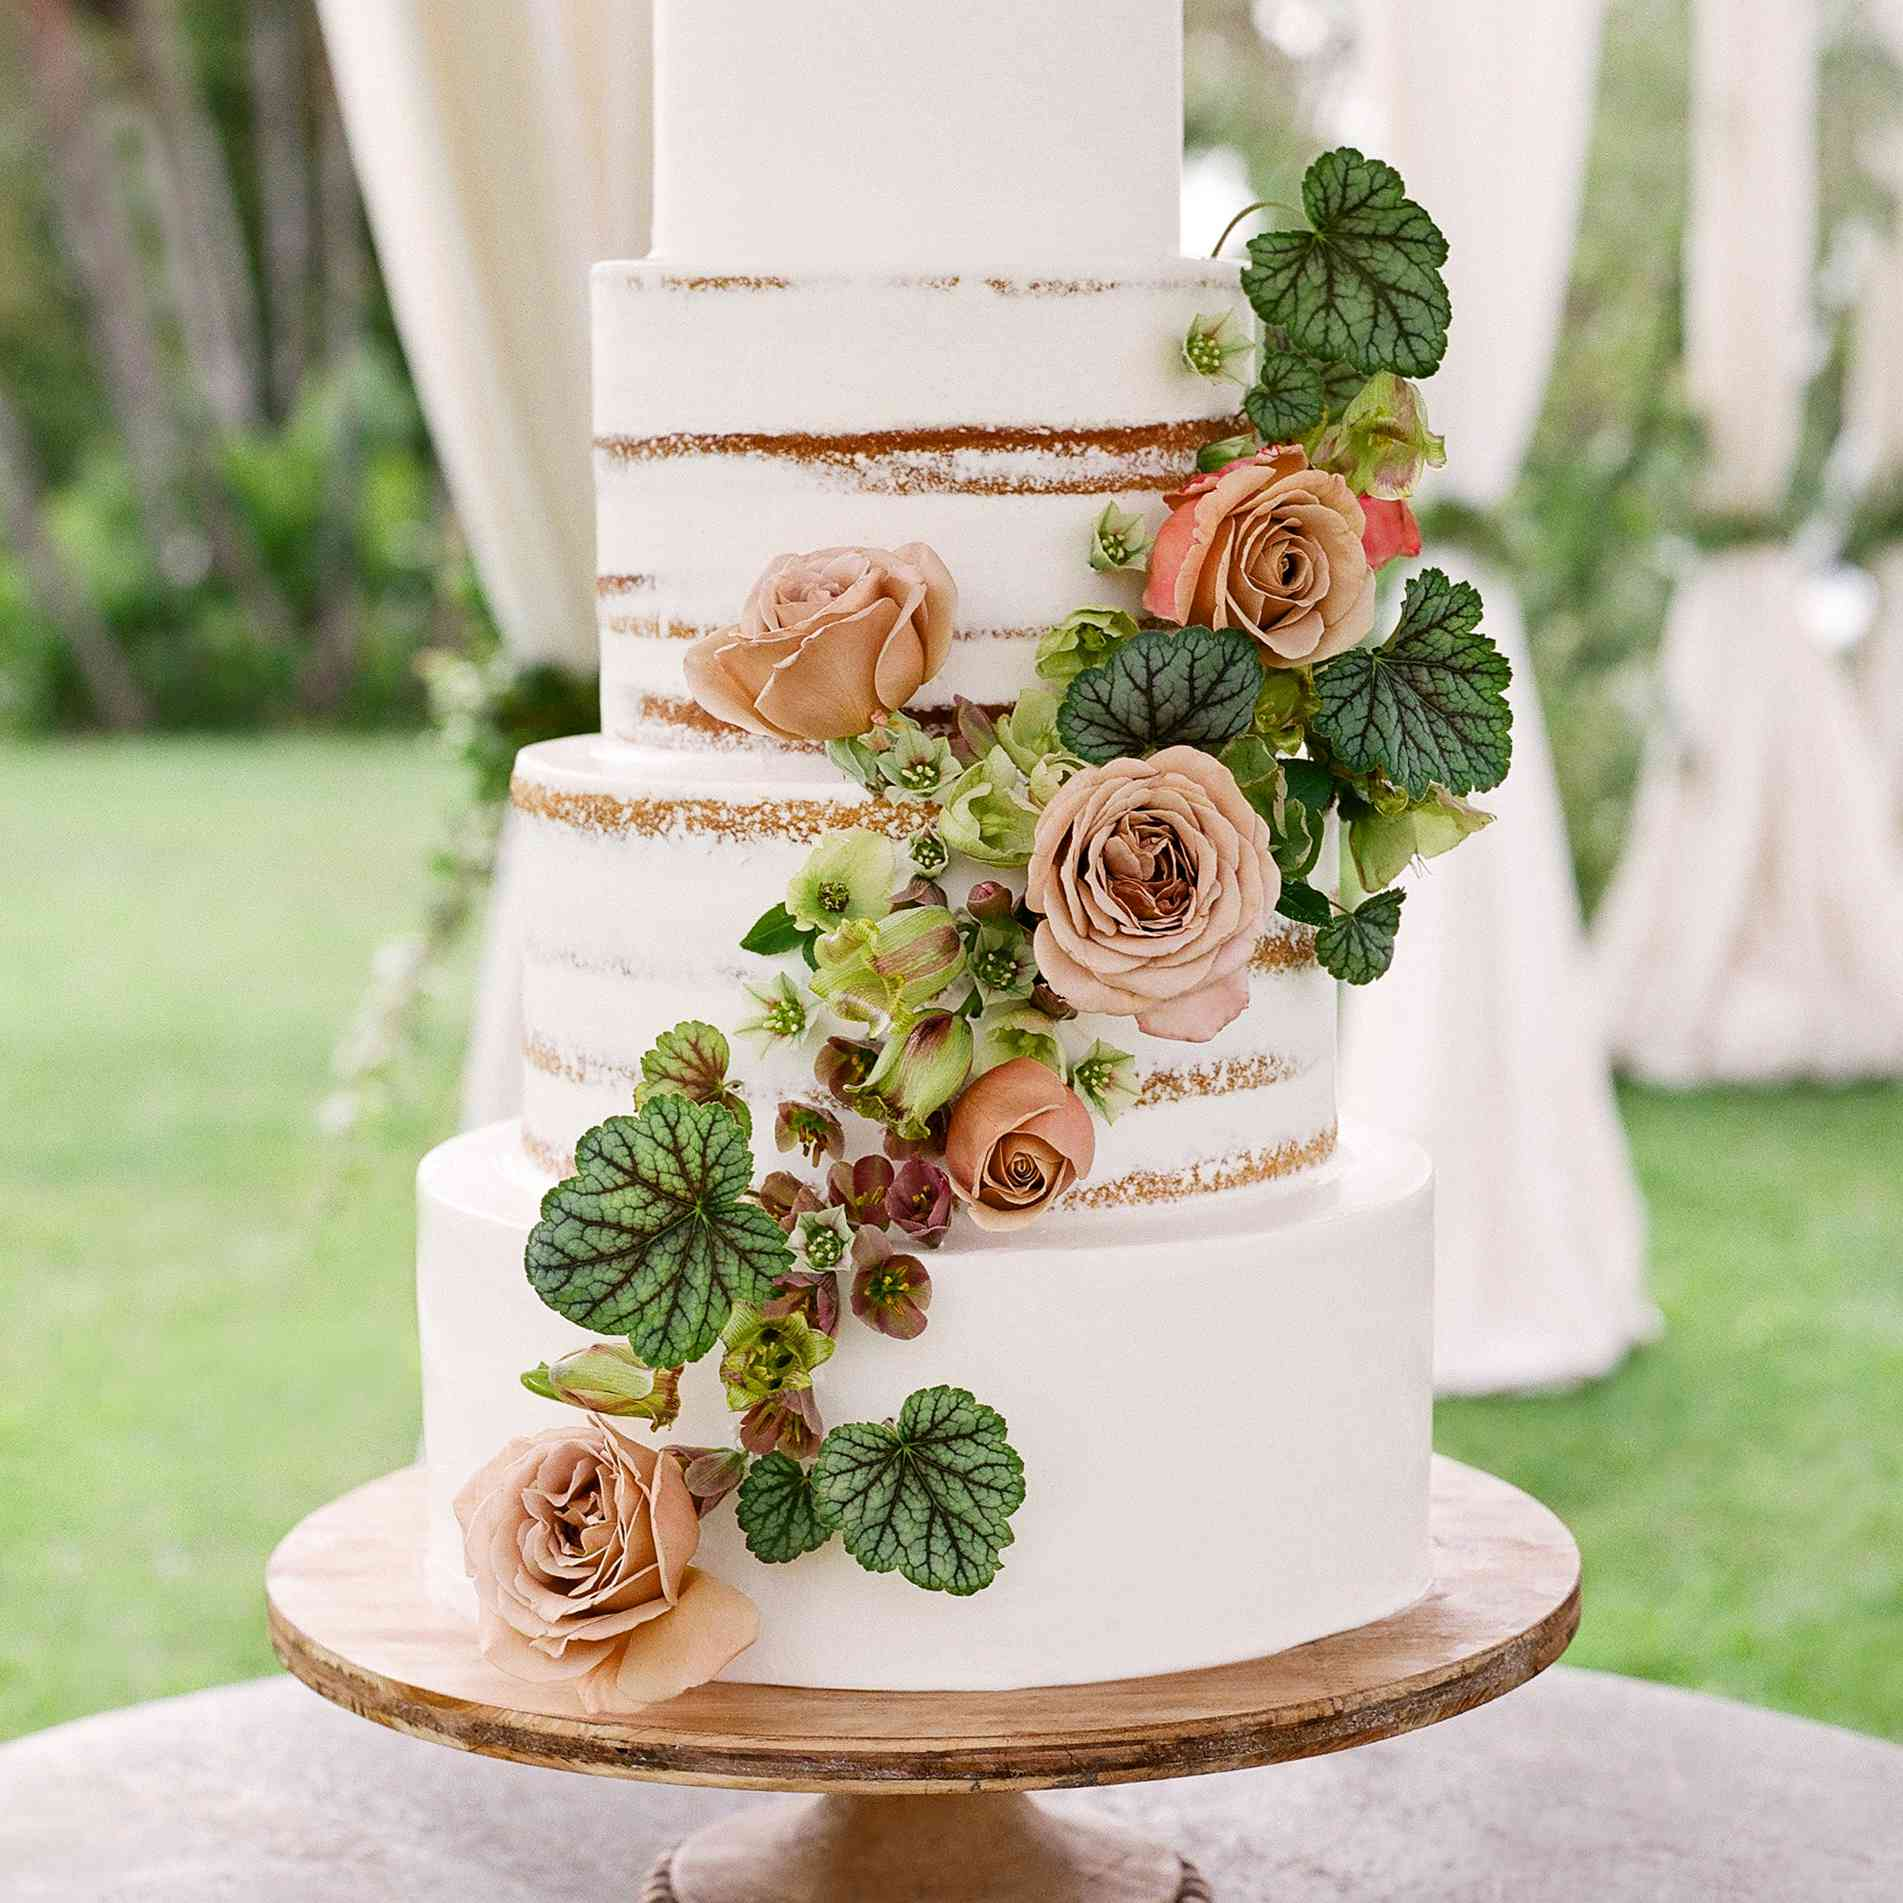 10 Simple Wedding Cakes for Every Style Celebration